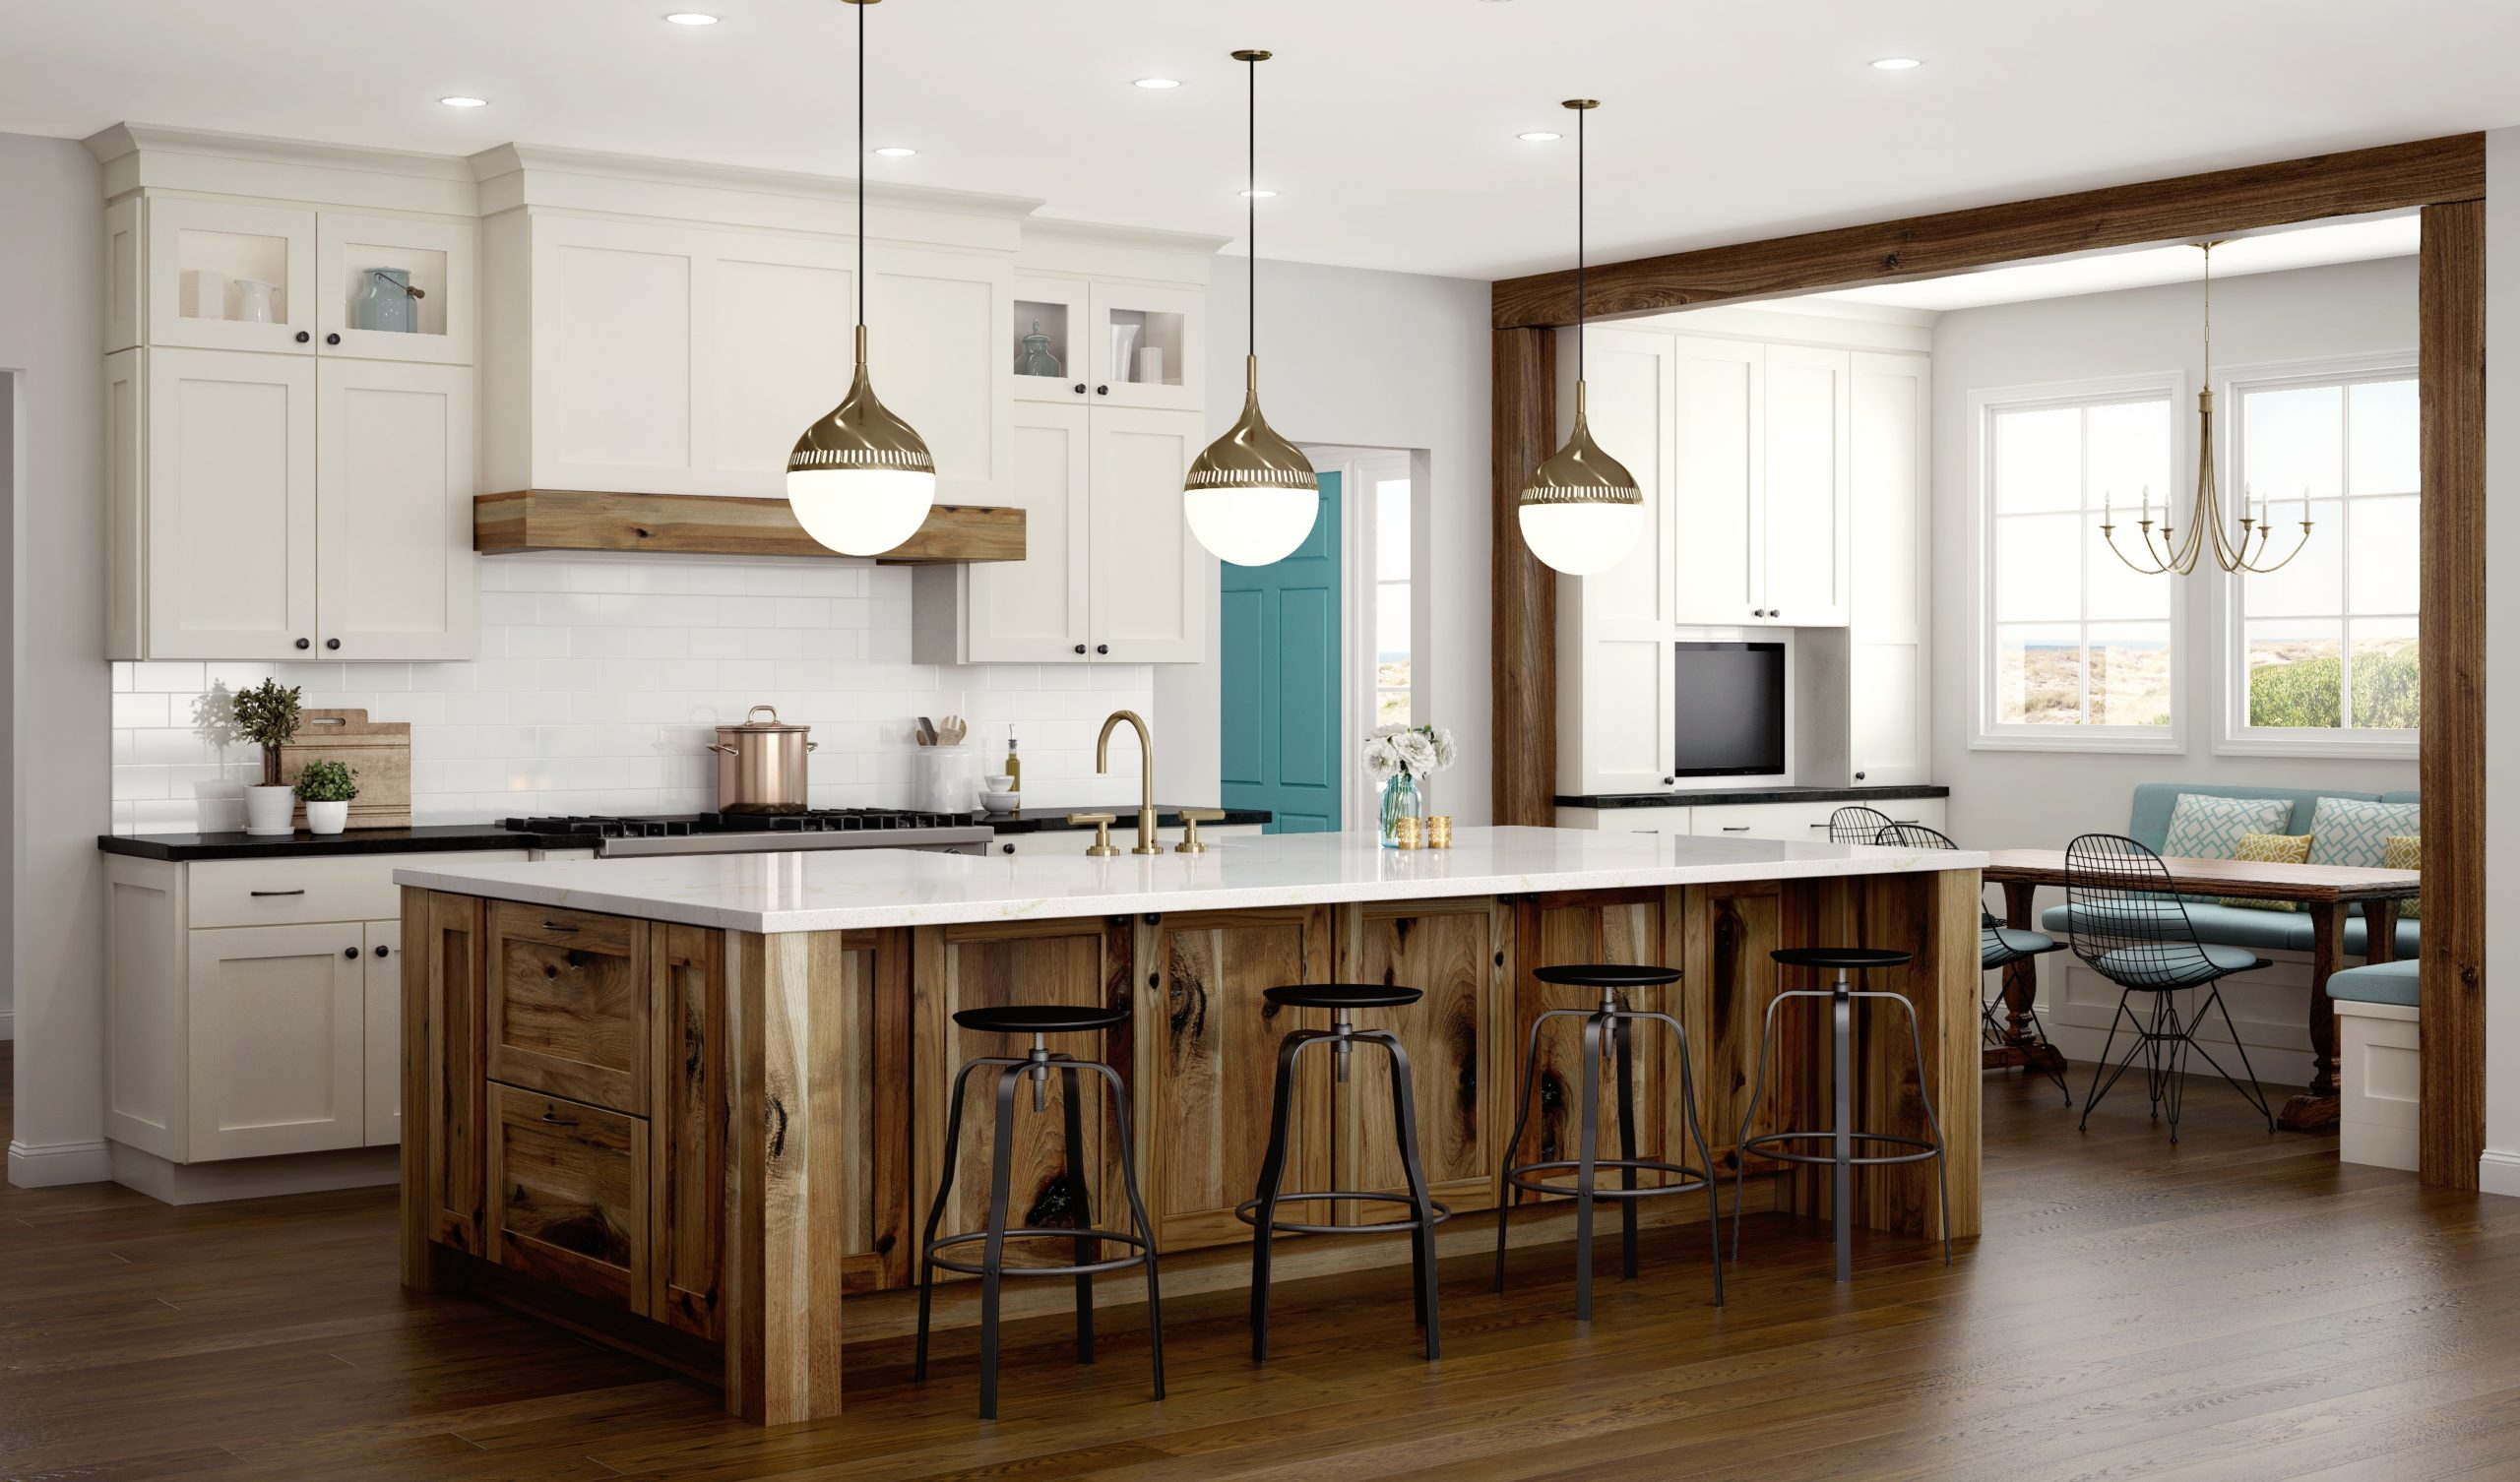 Cary Kitchen Cabinet Design & Remodeling | Cary Raleigh Chapel Hill NC